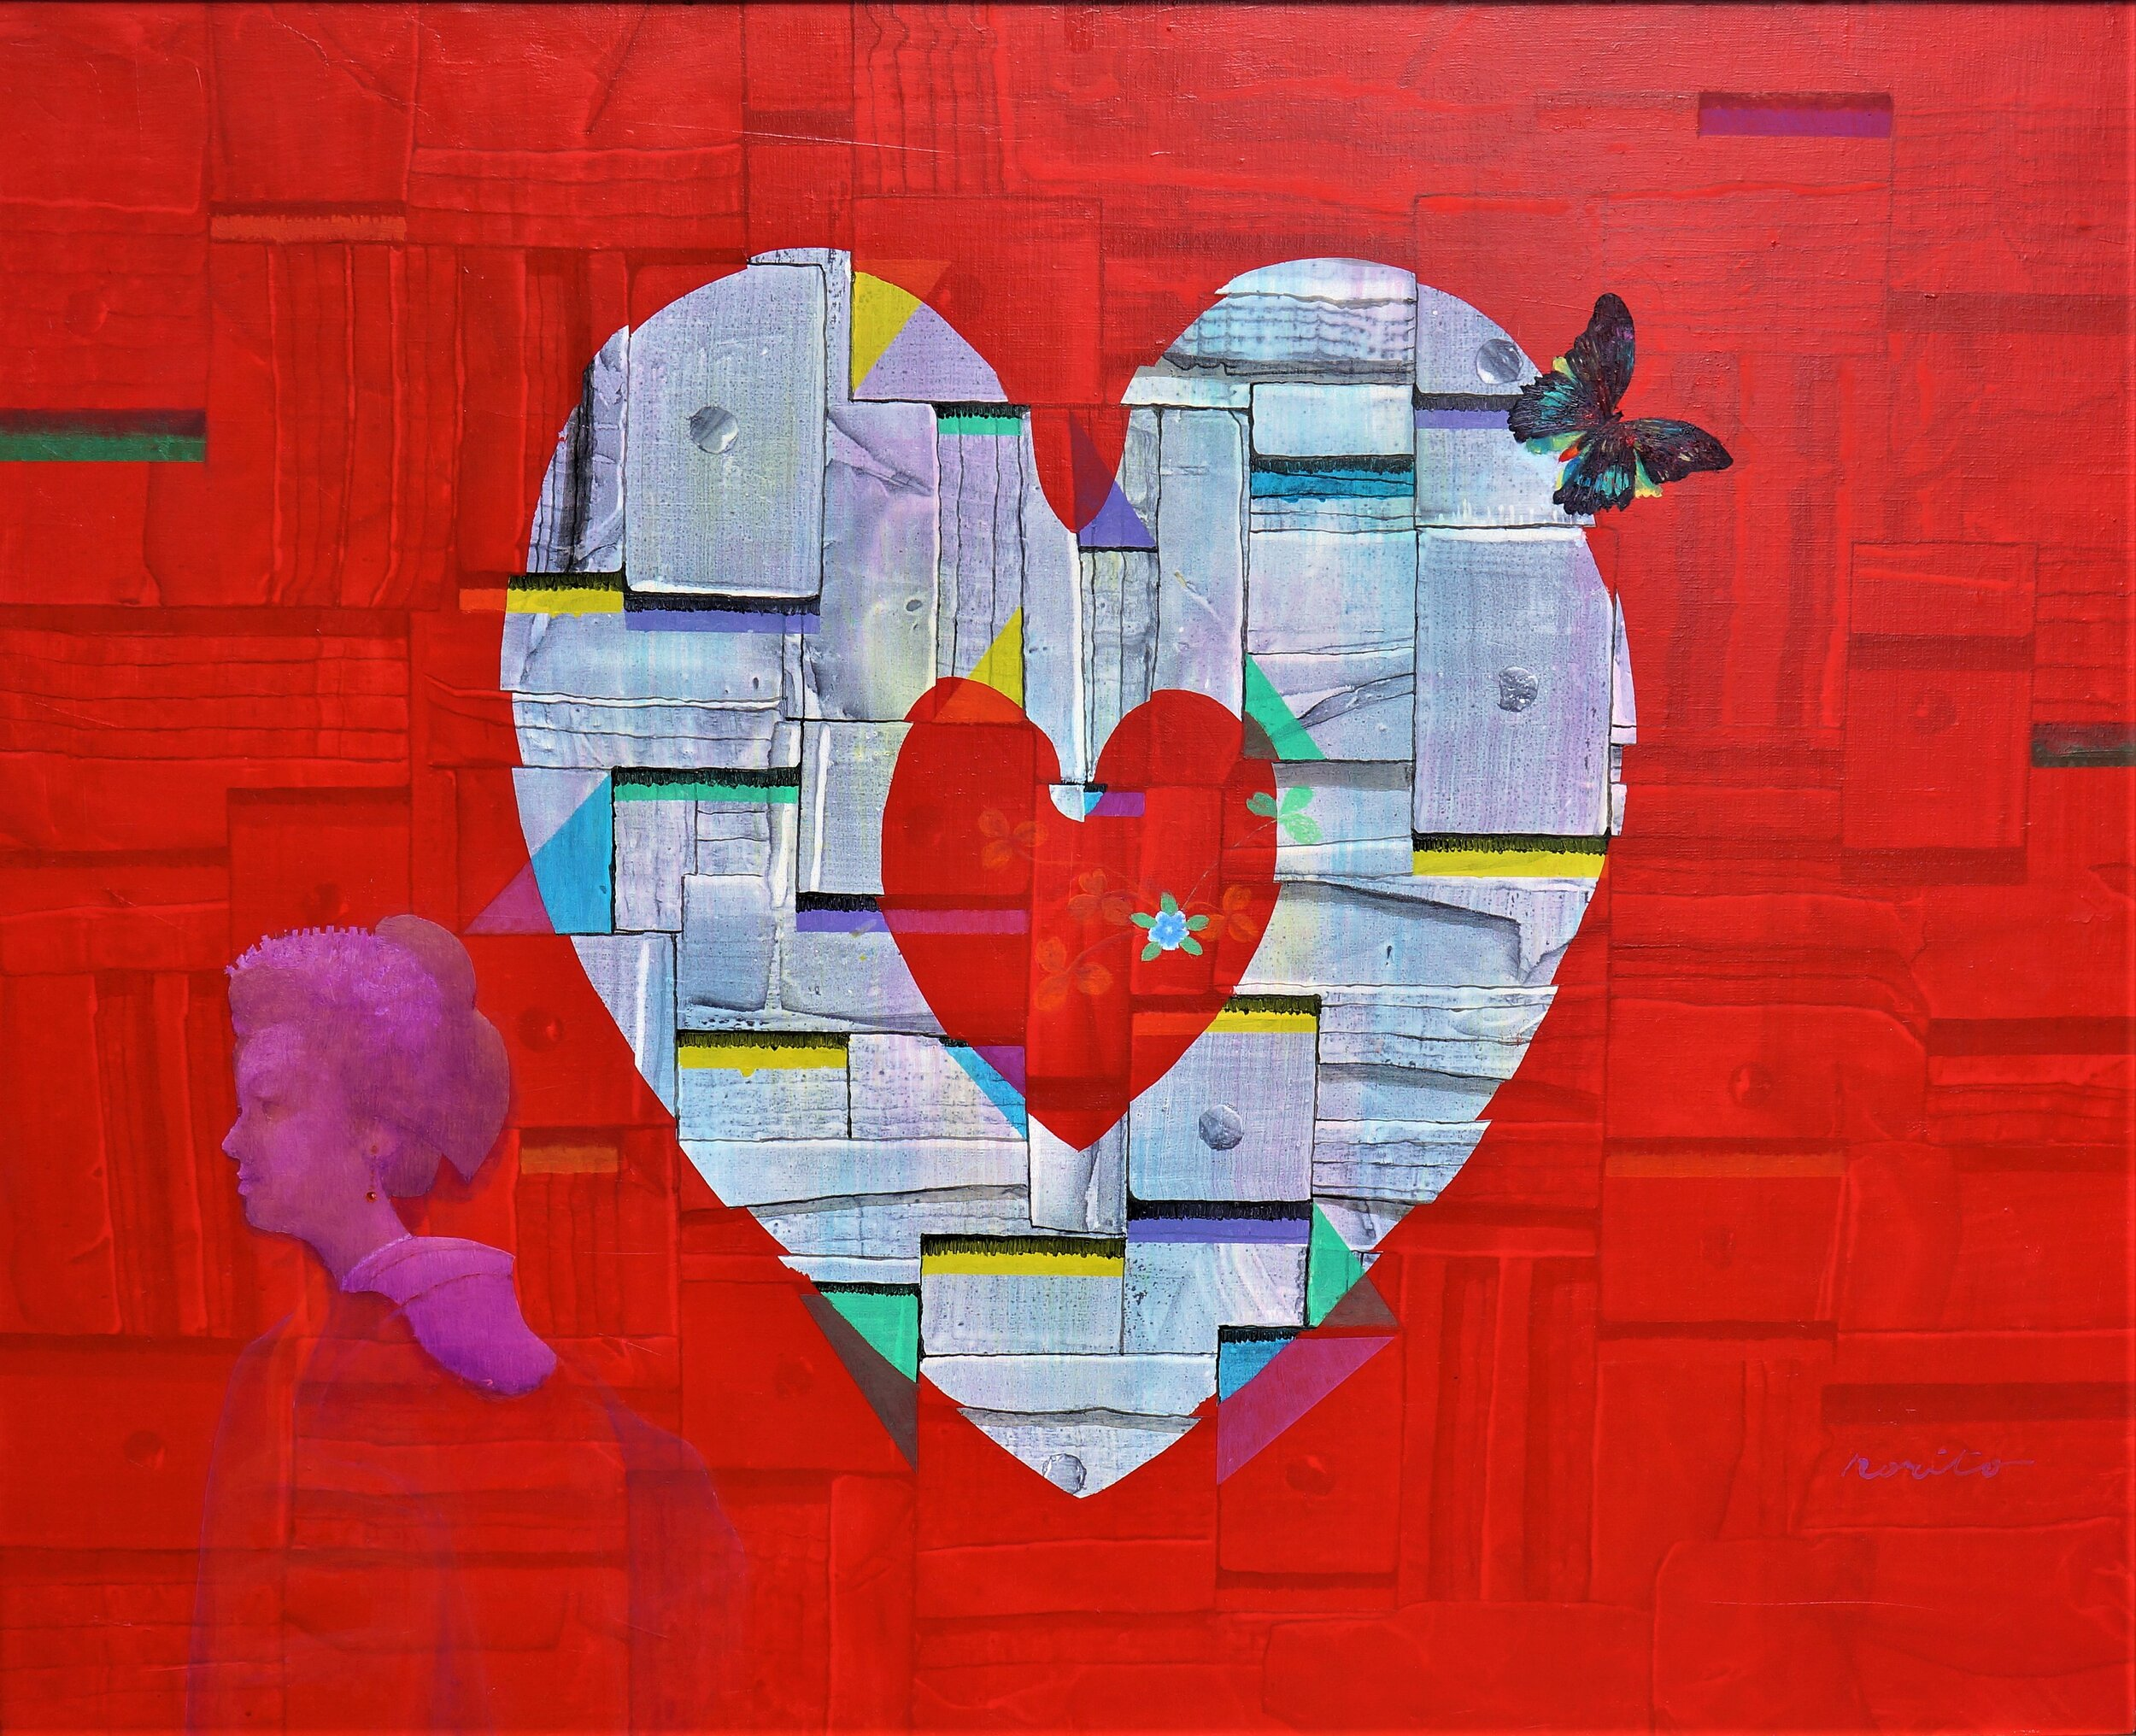 Abstract painting with dominated heart shapes in the middle on the red background.